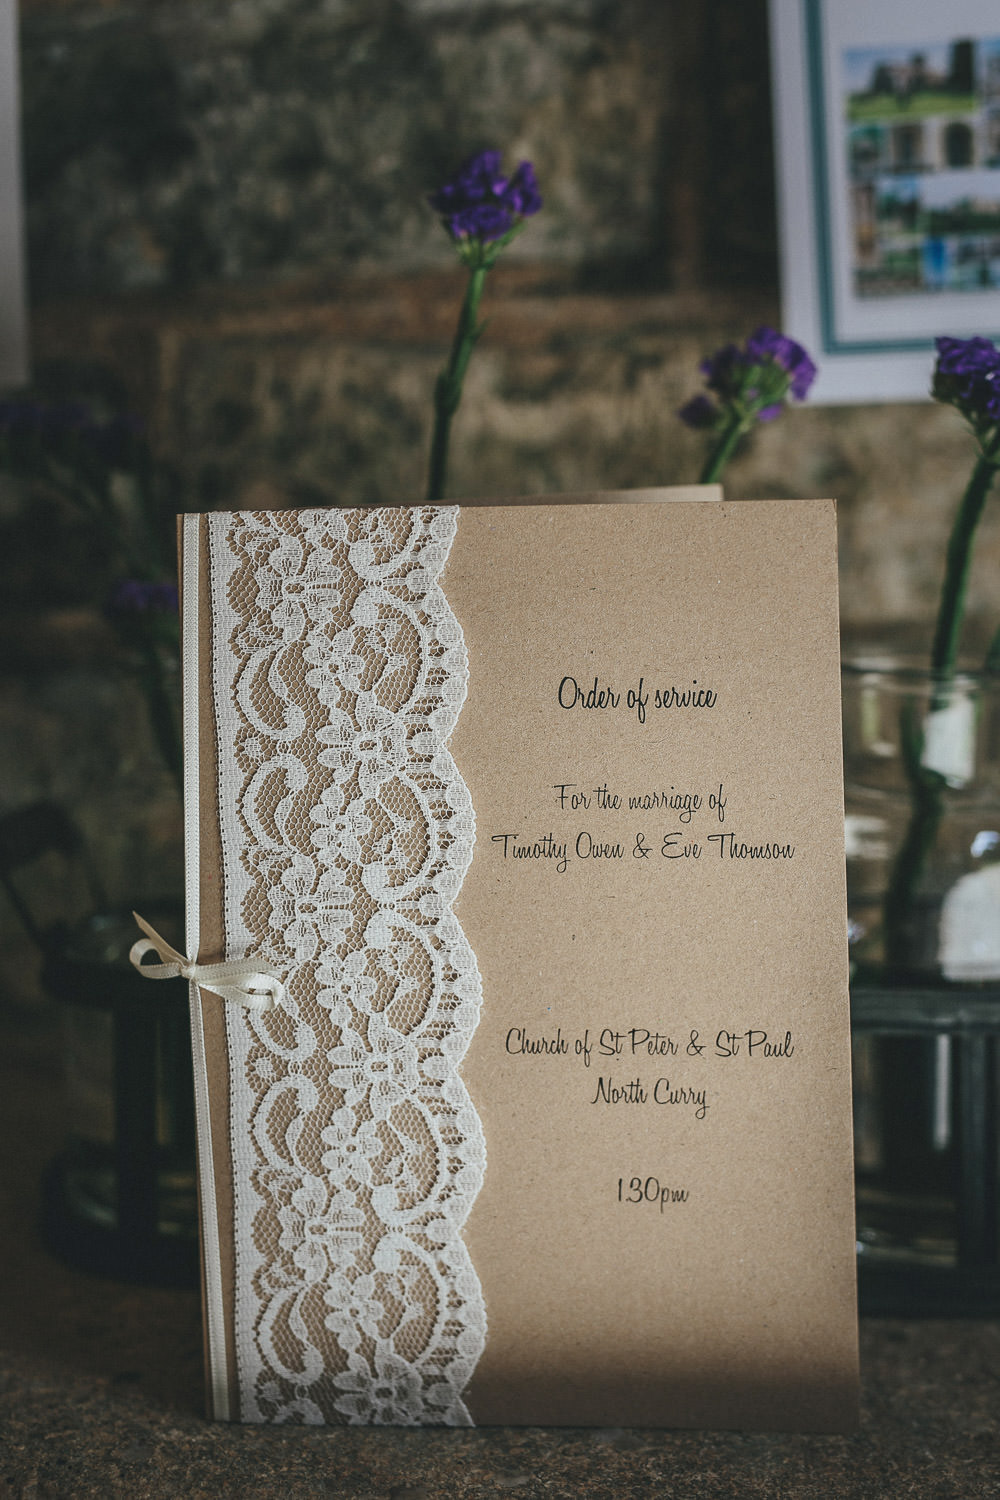 Country Wedding Decorations 44 Vintage Image by uca